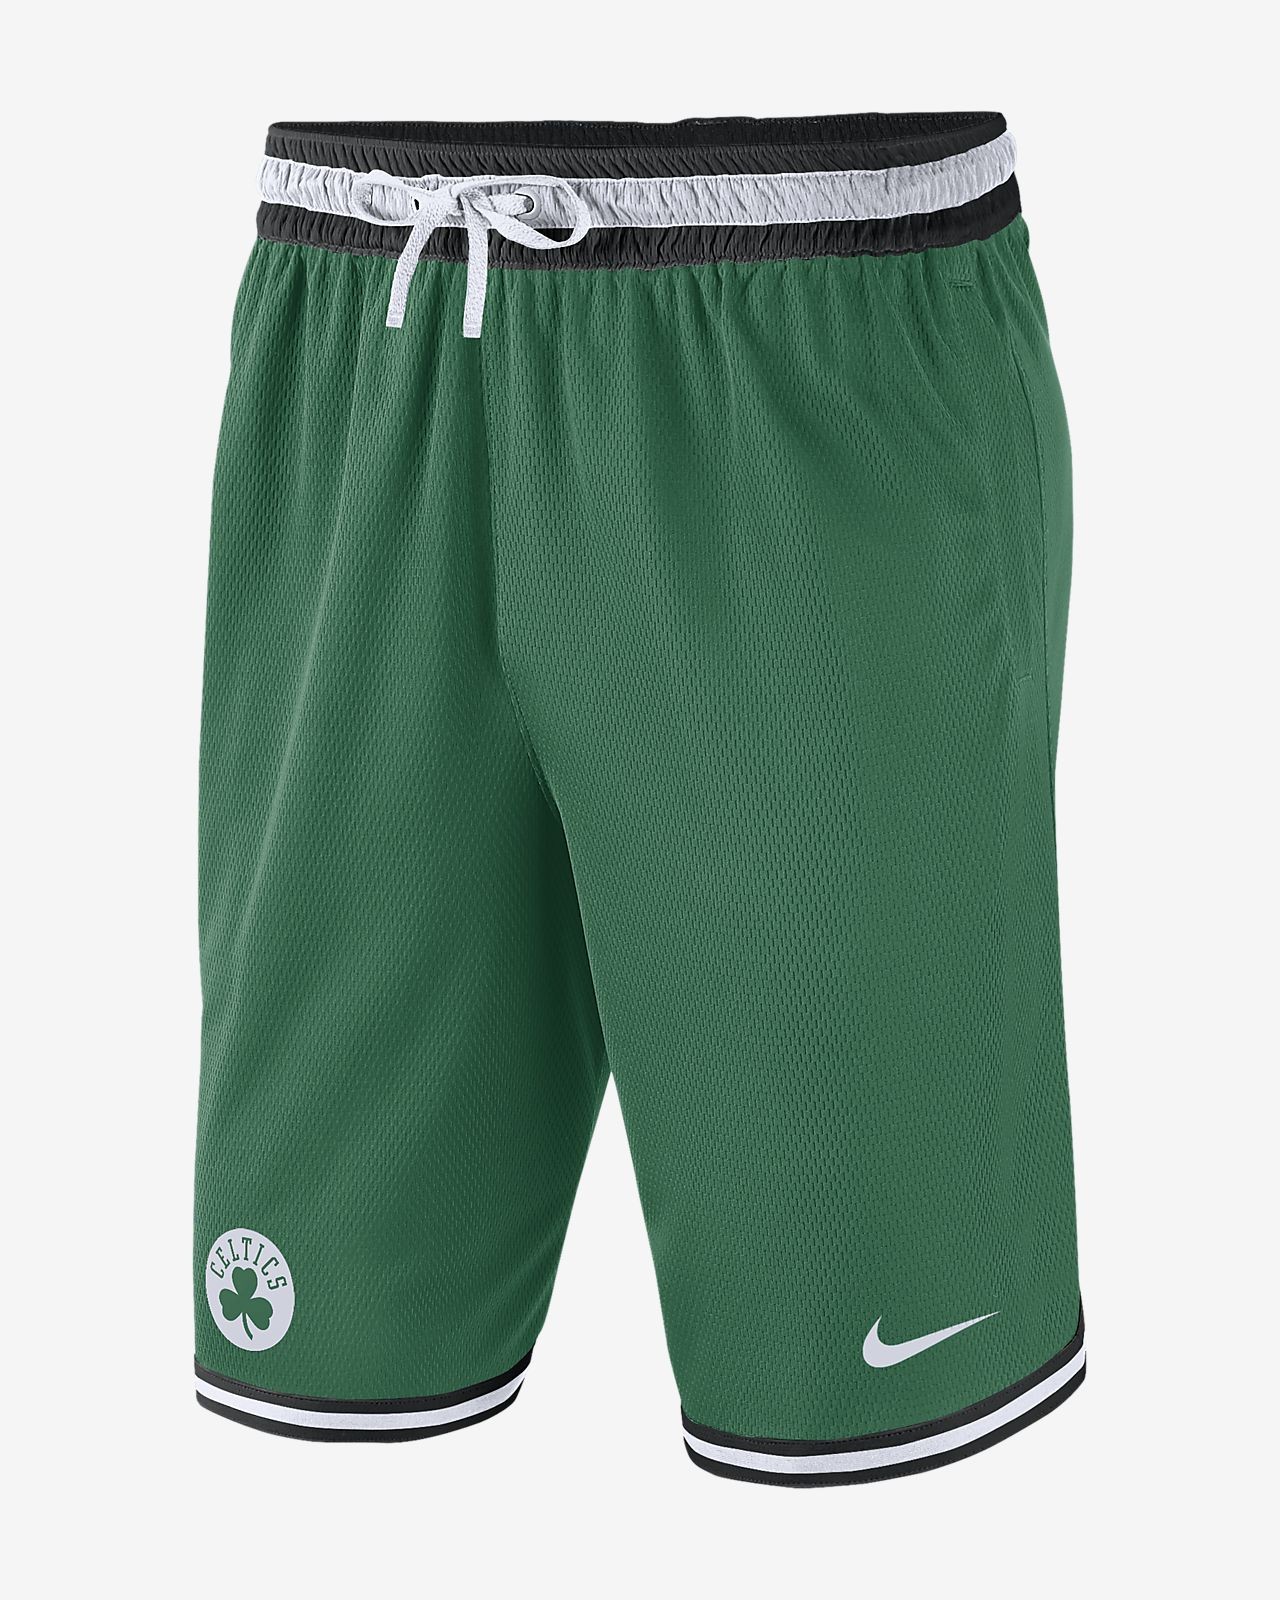 Boston Celtics Nike-NBA-shorts til mænd